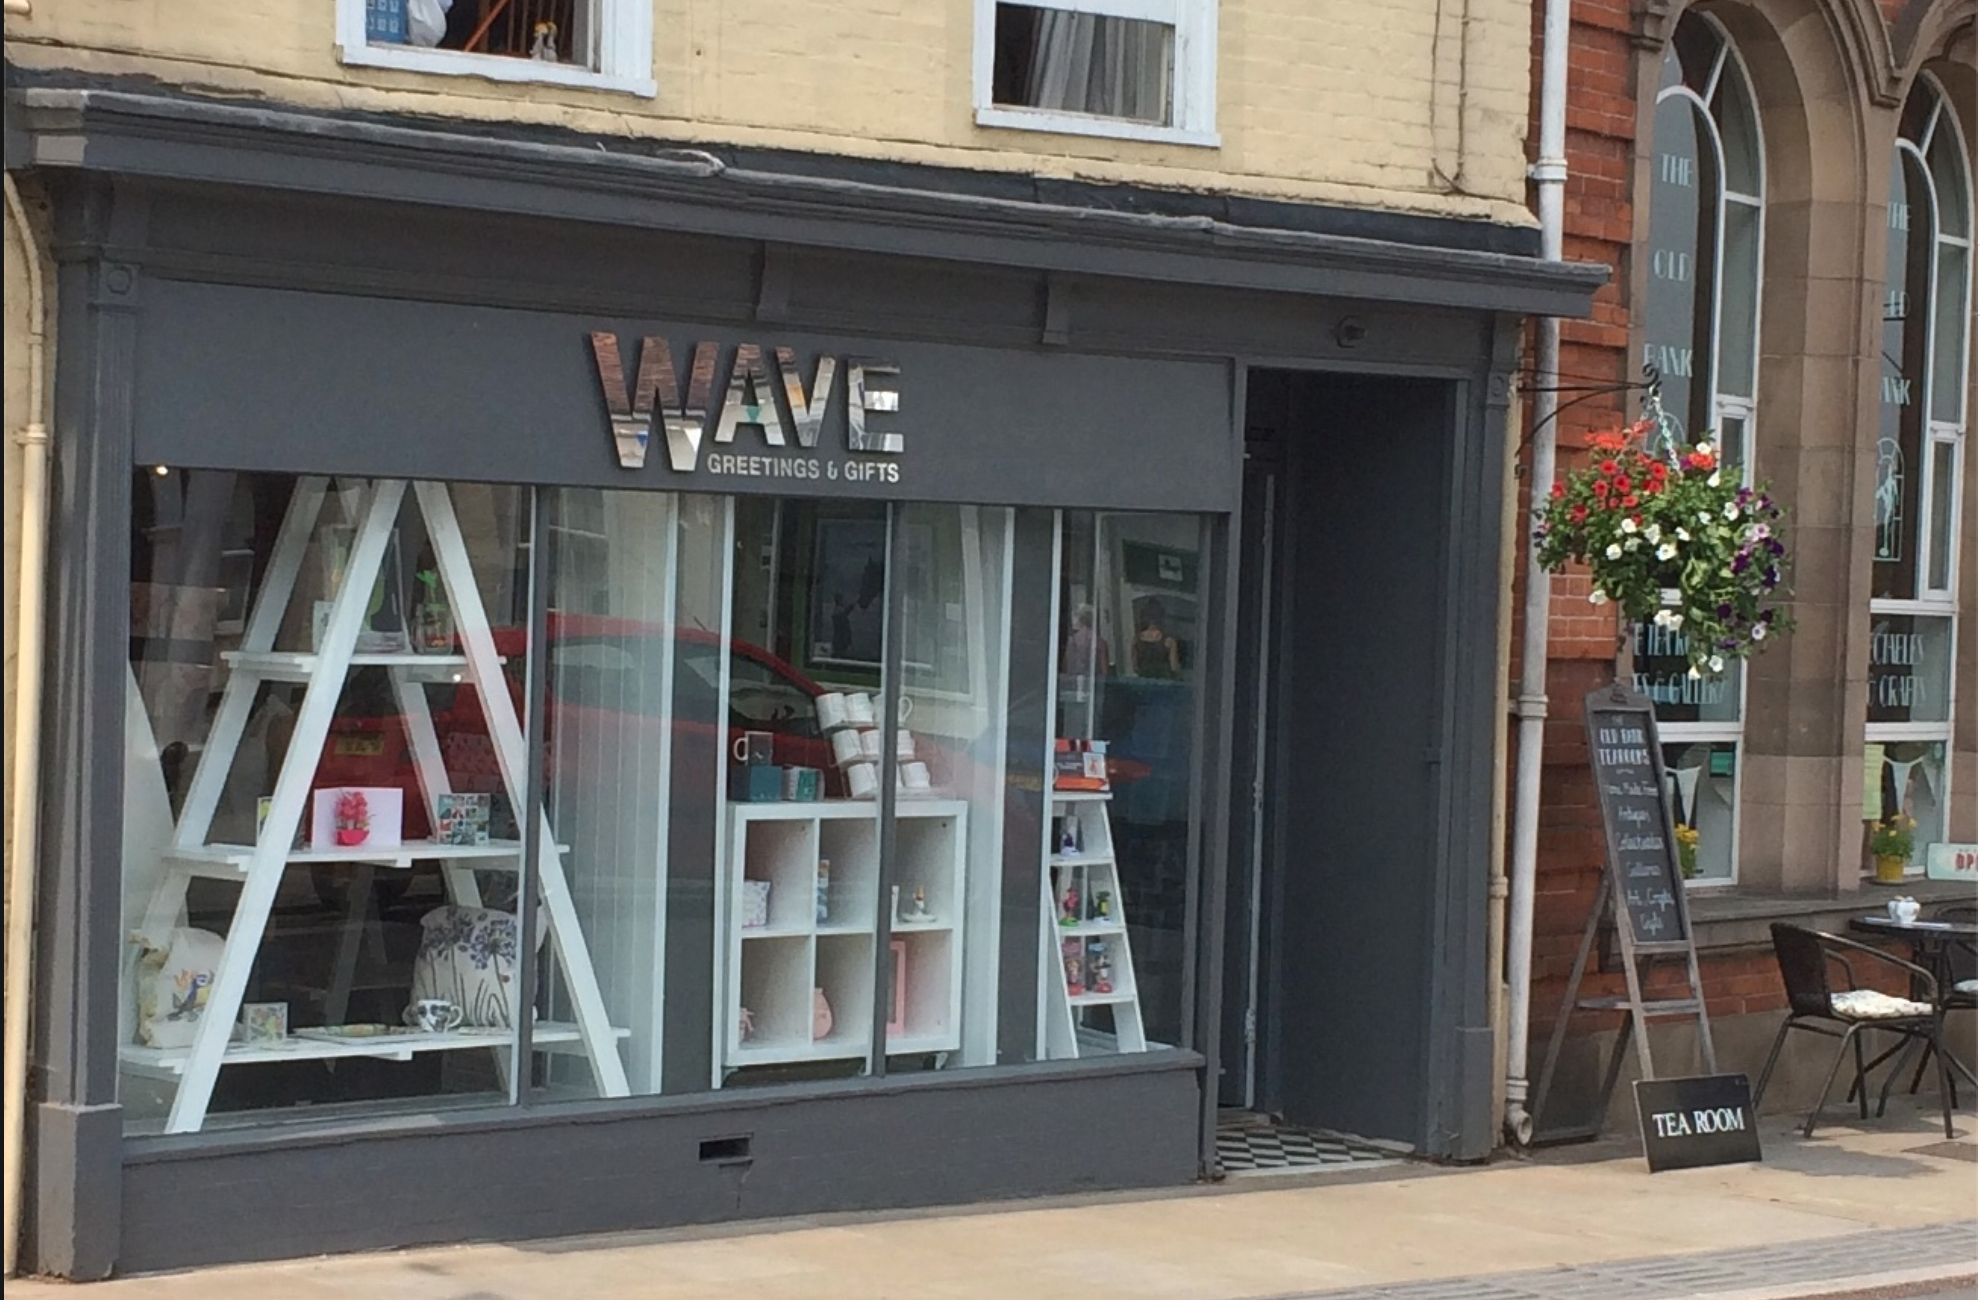 Above: Wave card and gift shop in Bungay.